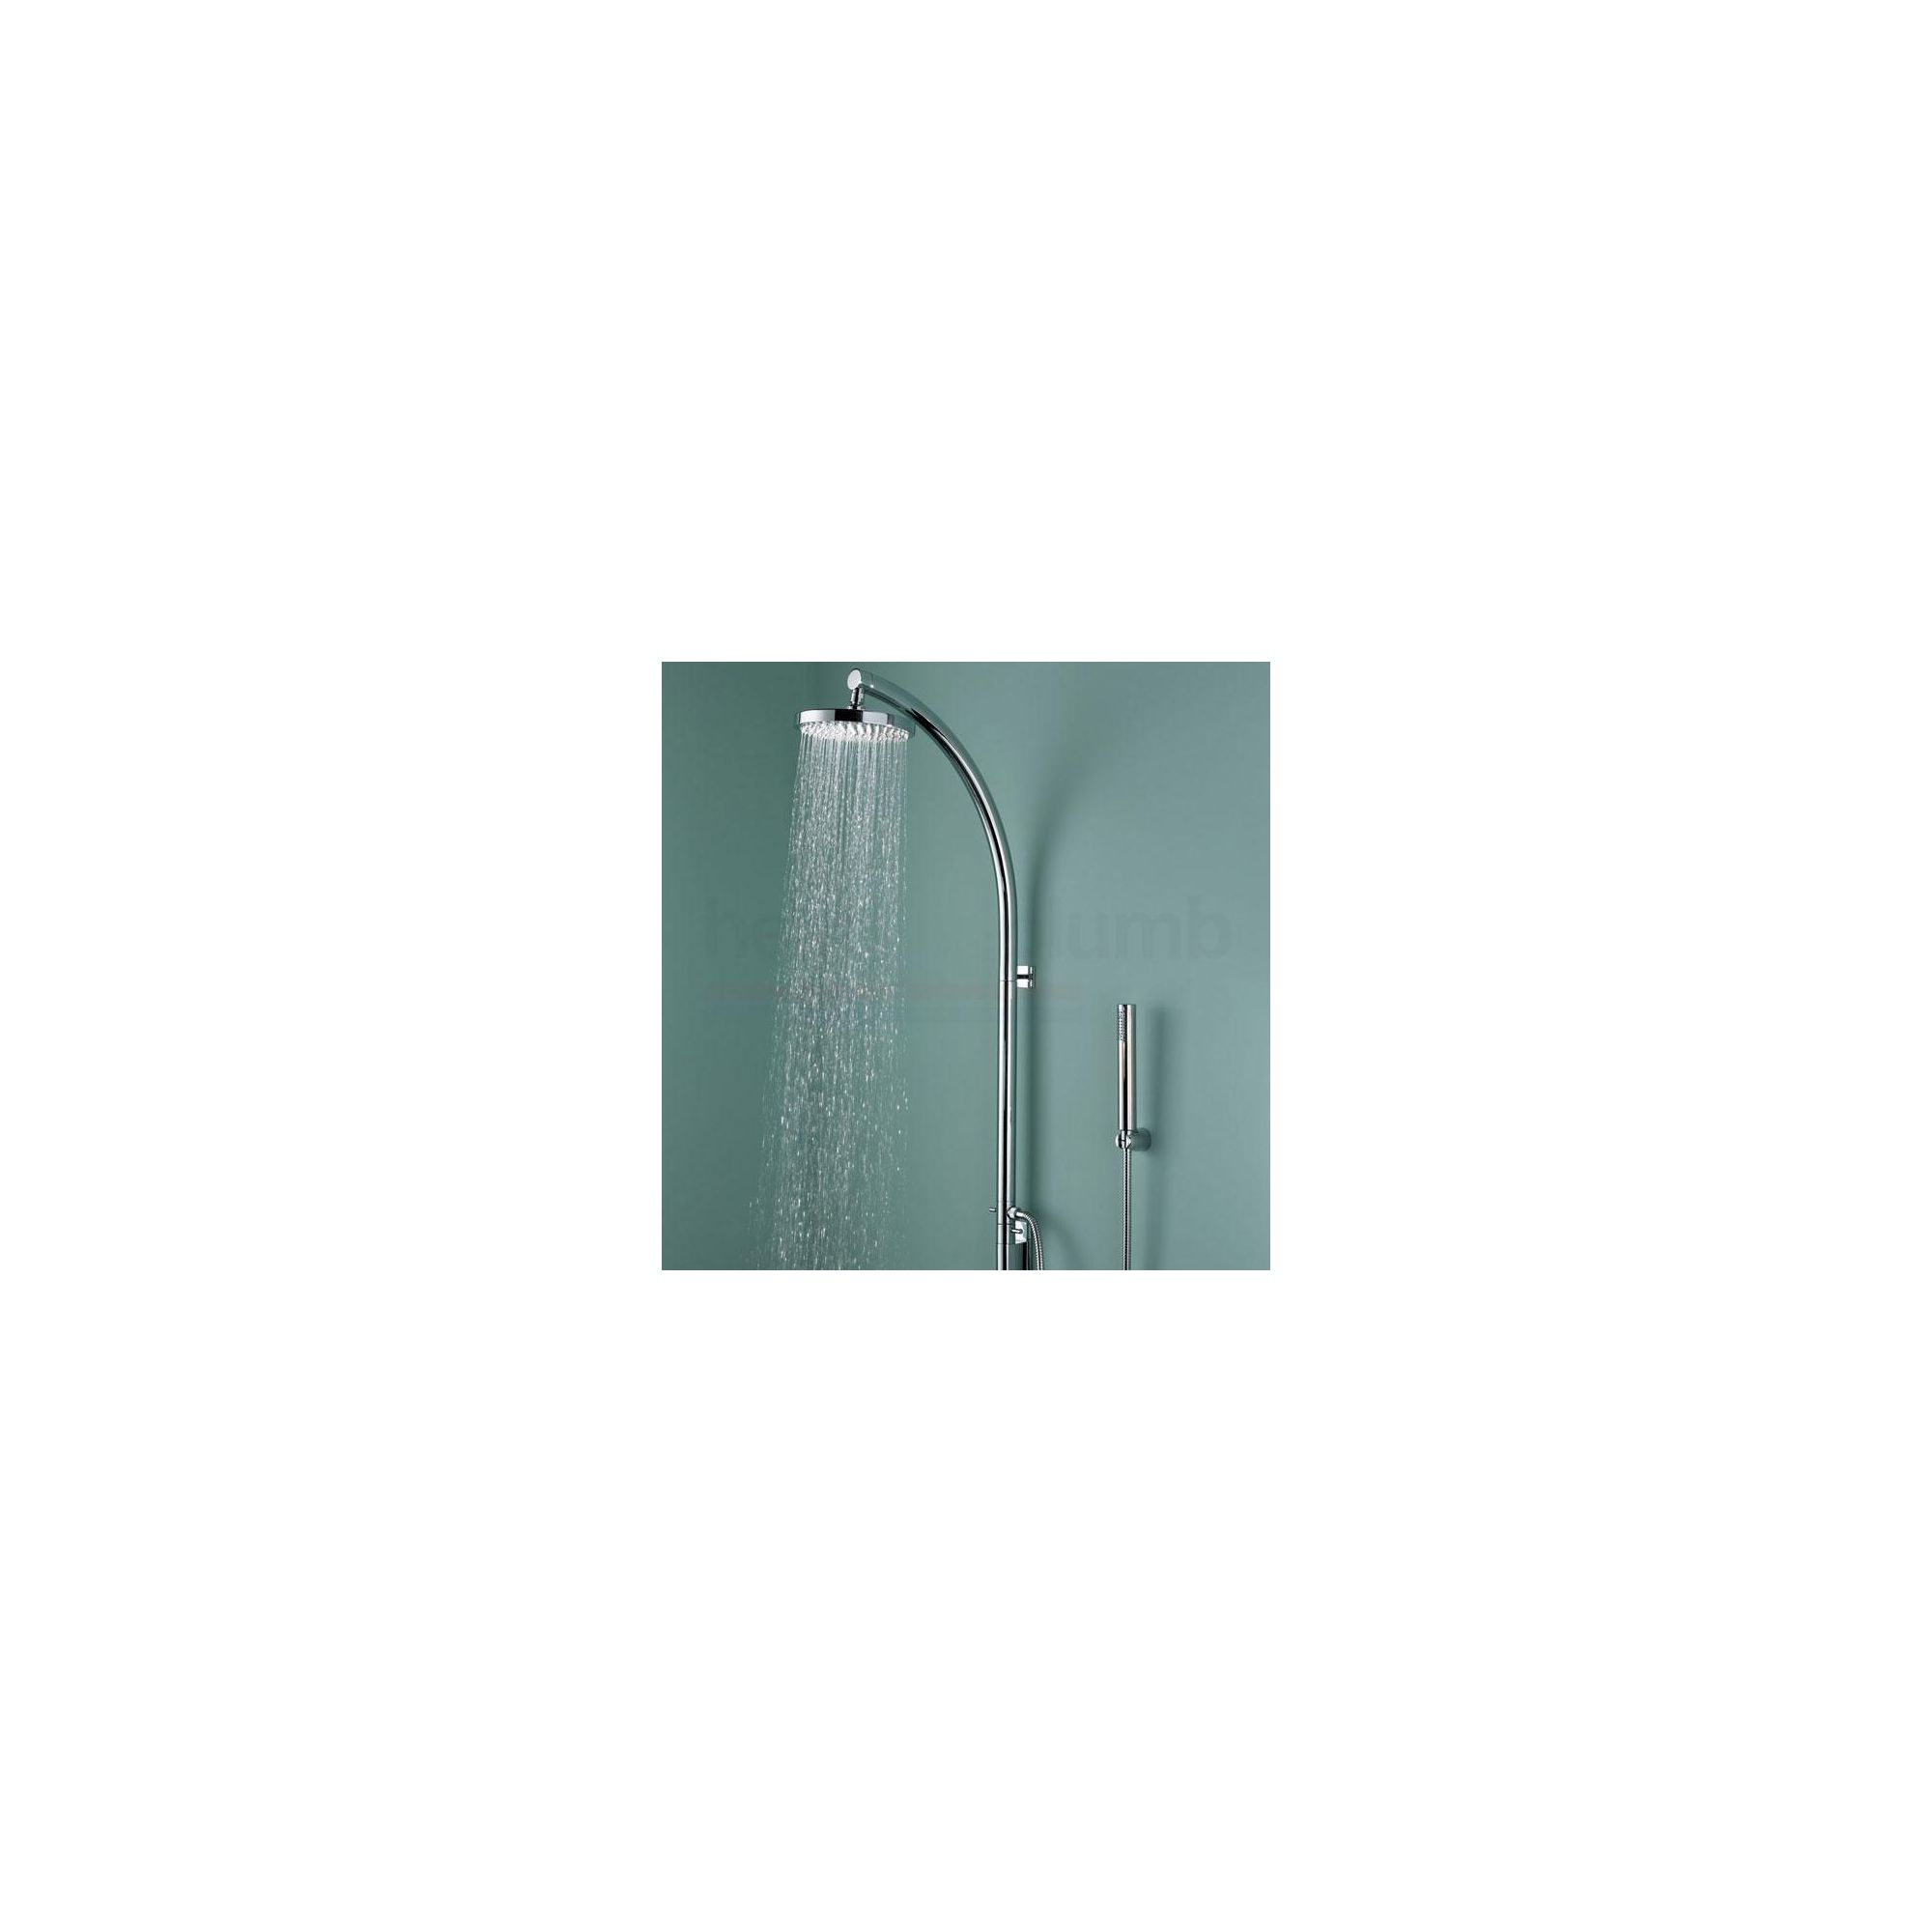 Bristan Prism Inline Vertical Shower Pole with Integral Diverter to Handset Chrome Plated at Tesco Direct